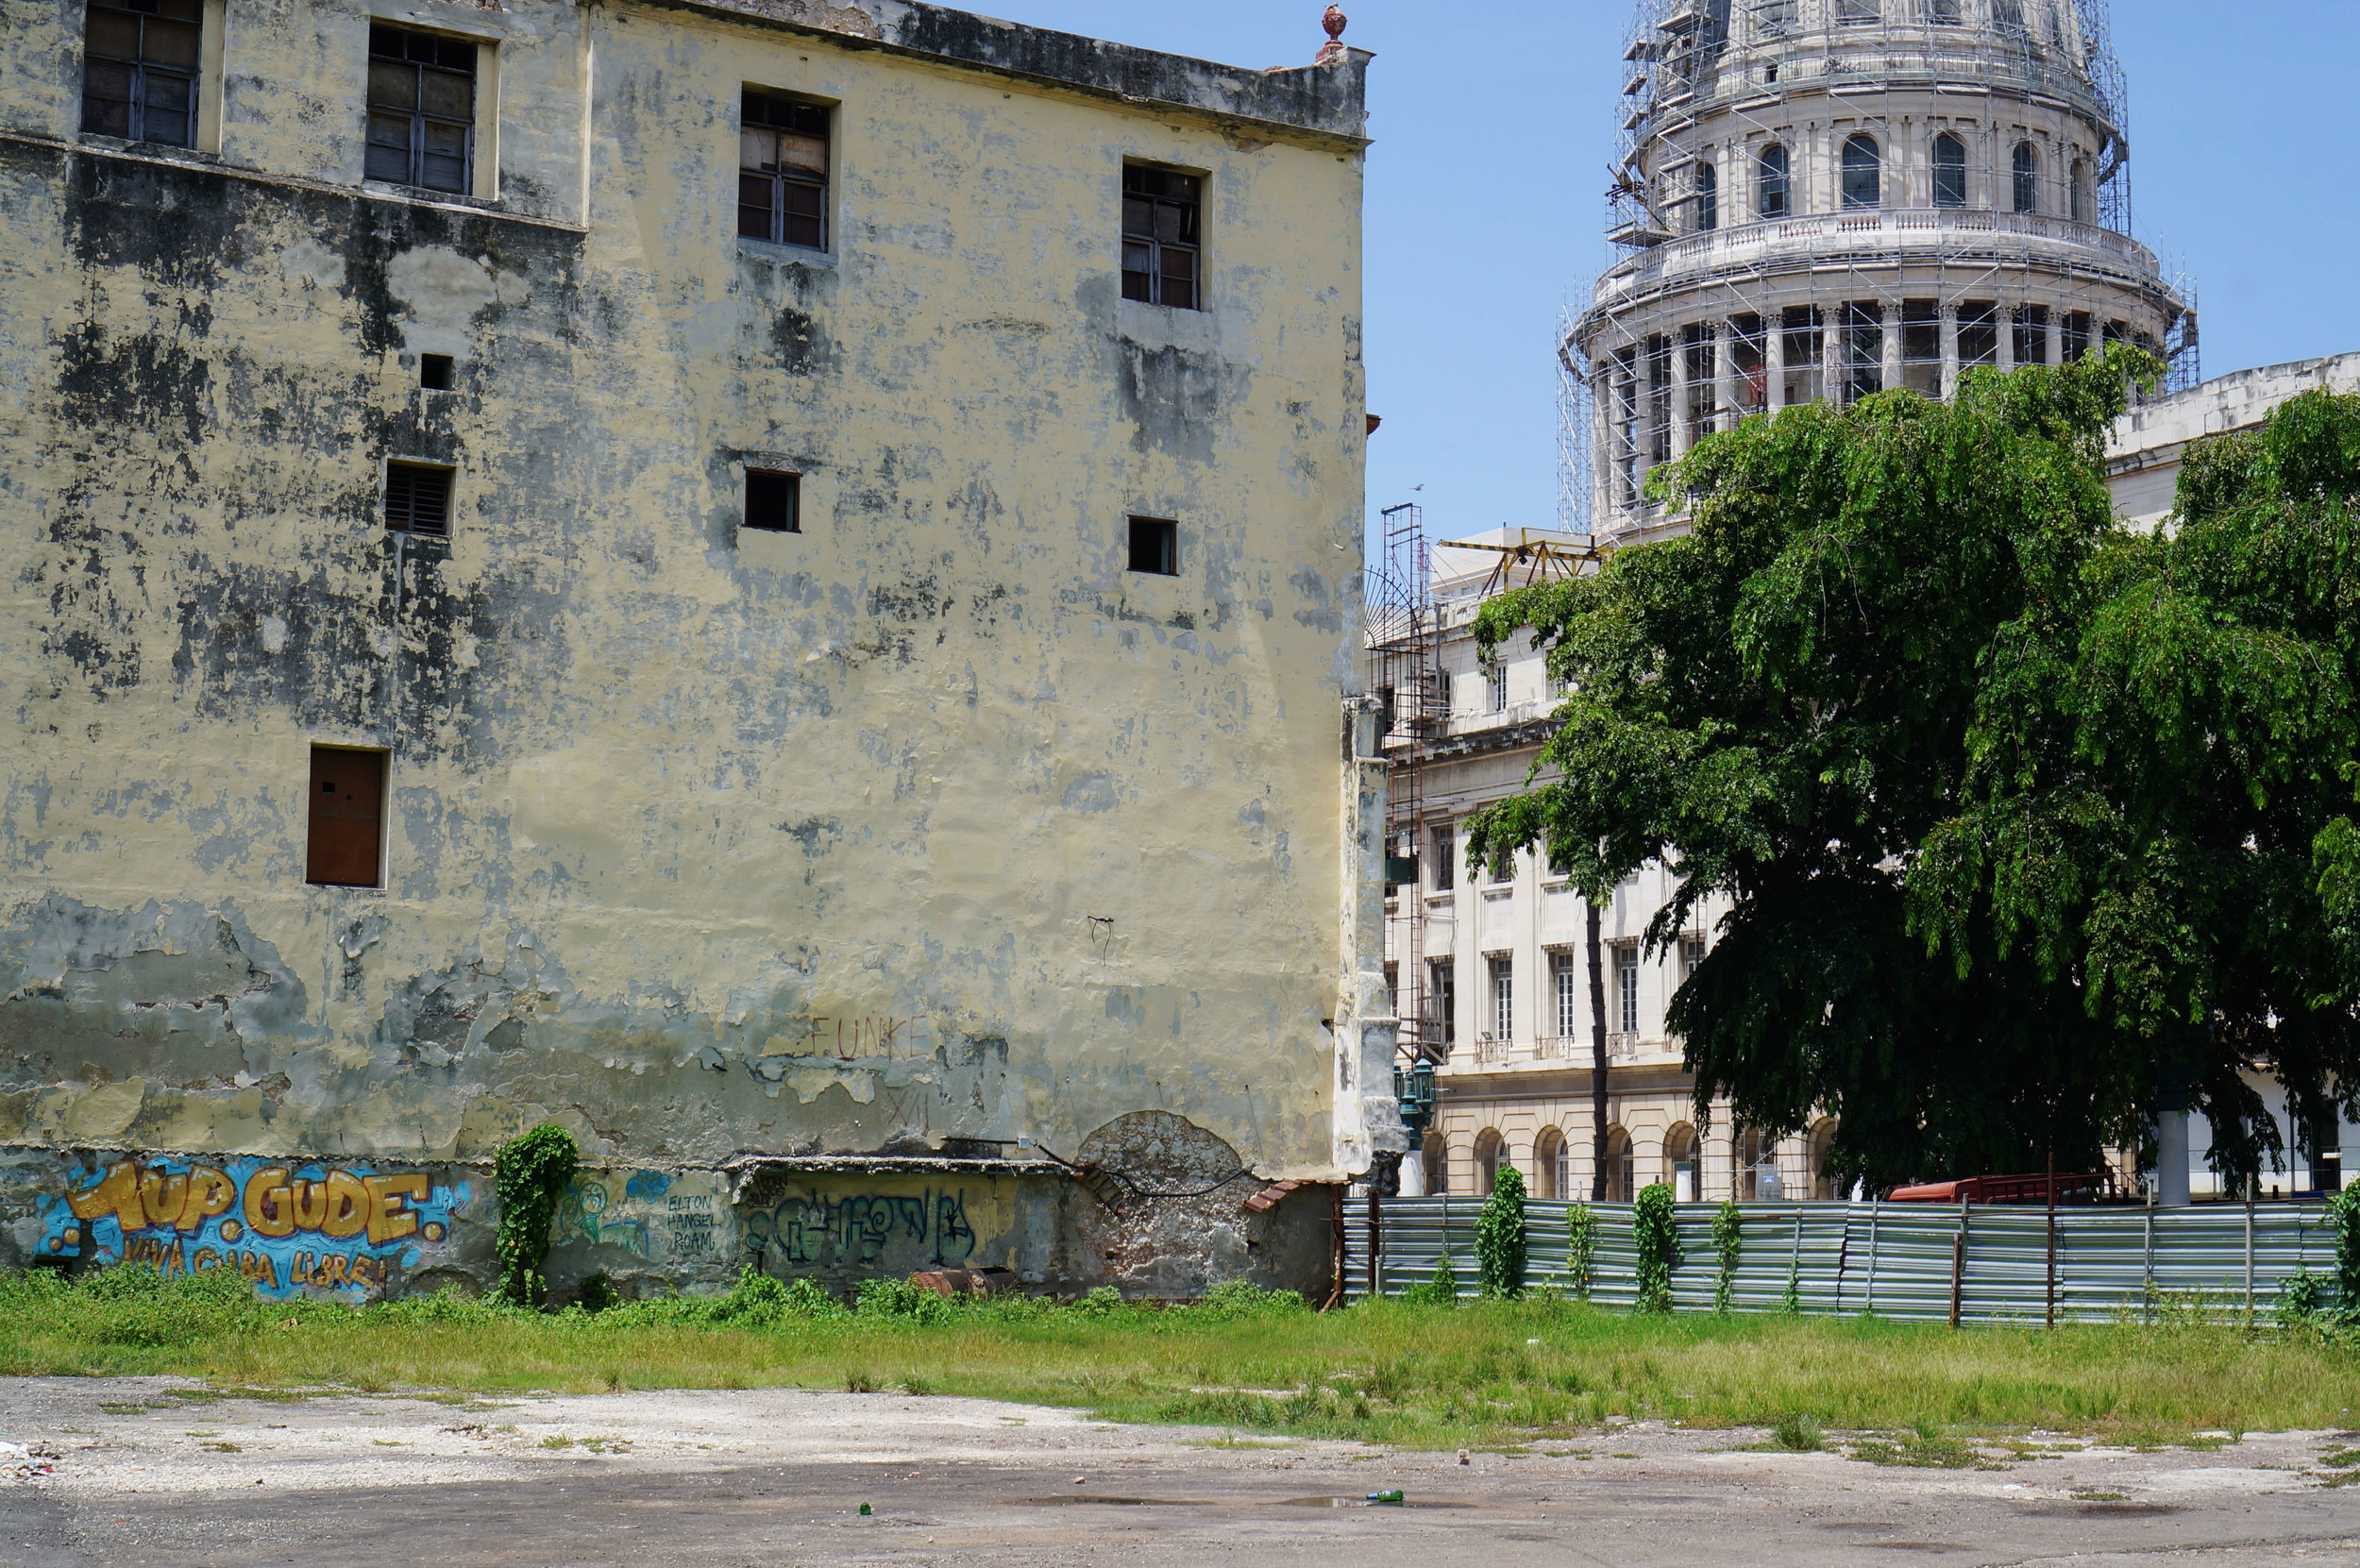 Near the entrance to Havana's Chinatown, contrasts of decay and restoration.